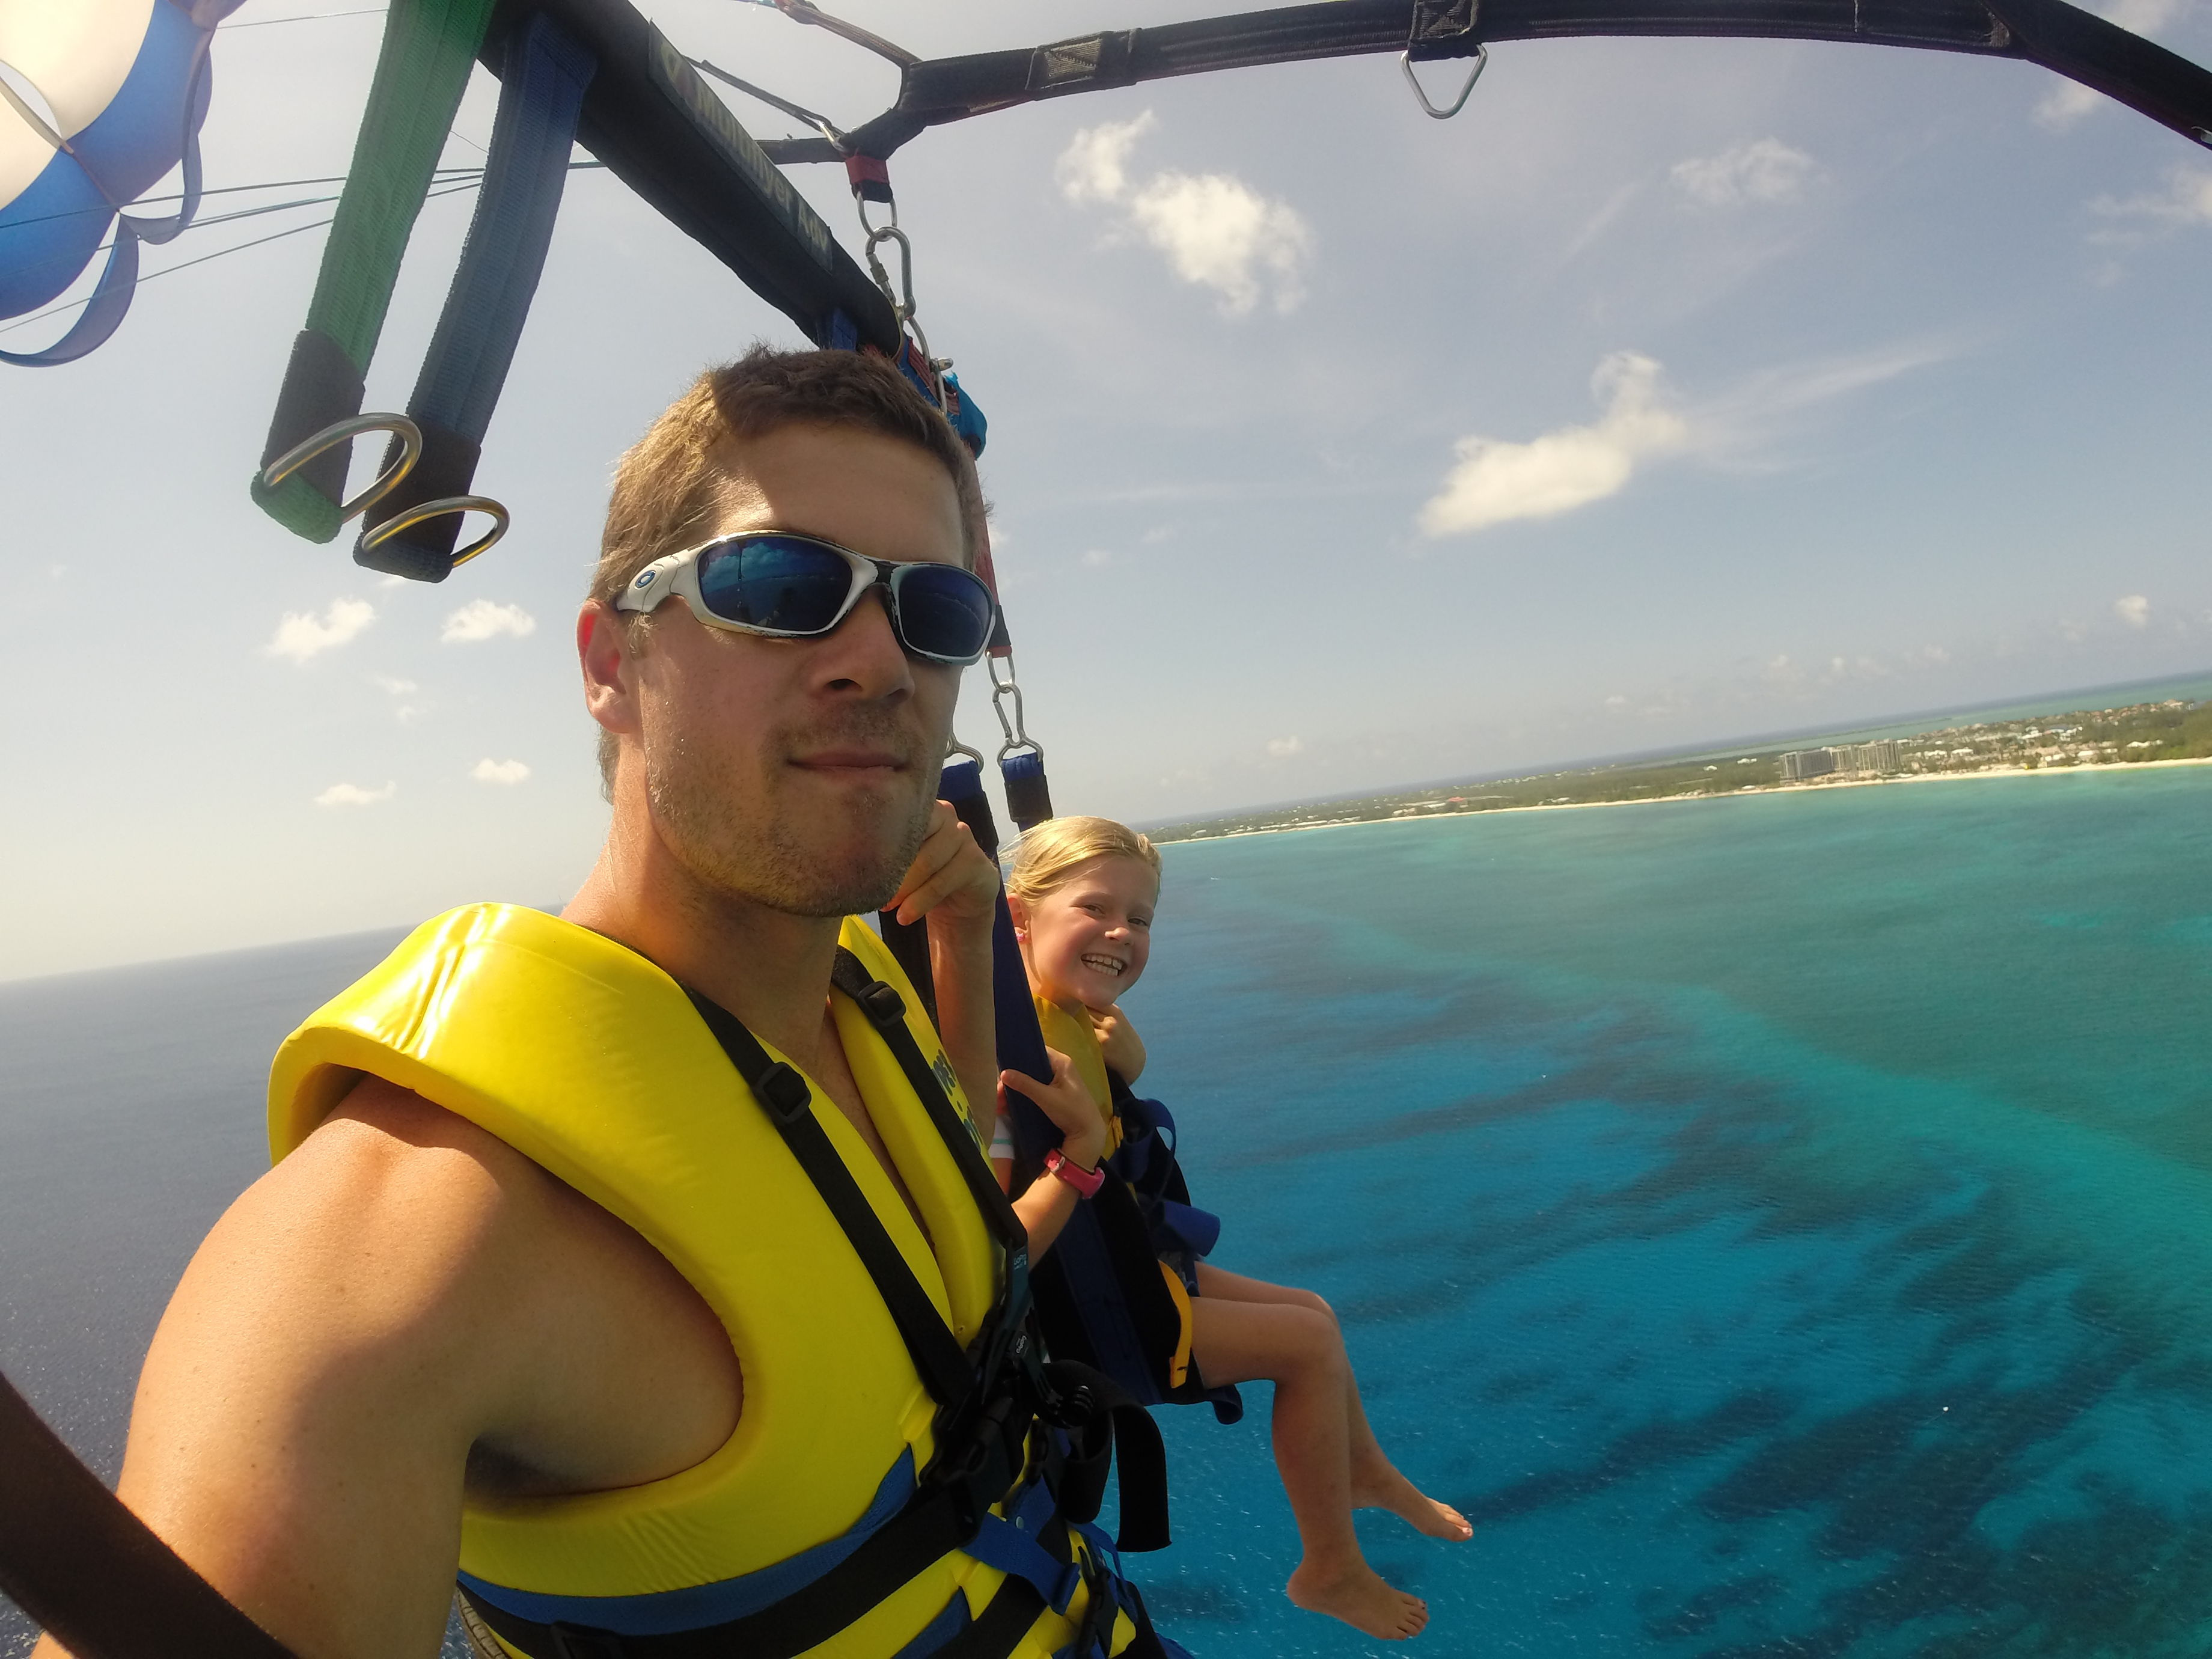 Parasailing in Grand Cayman - Globetrotting Around the World